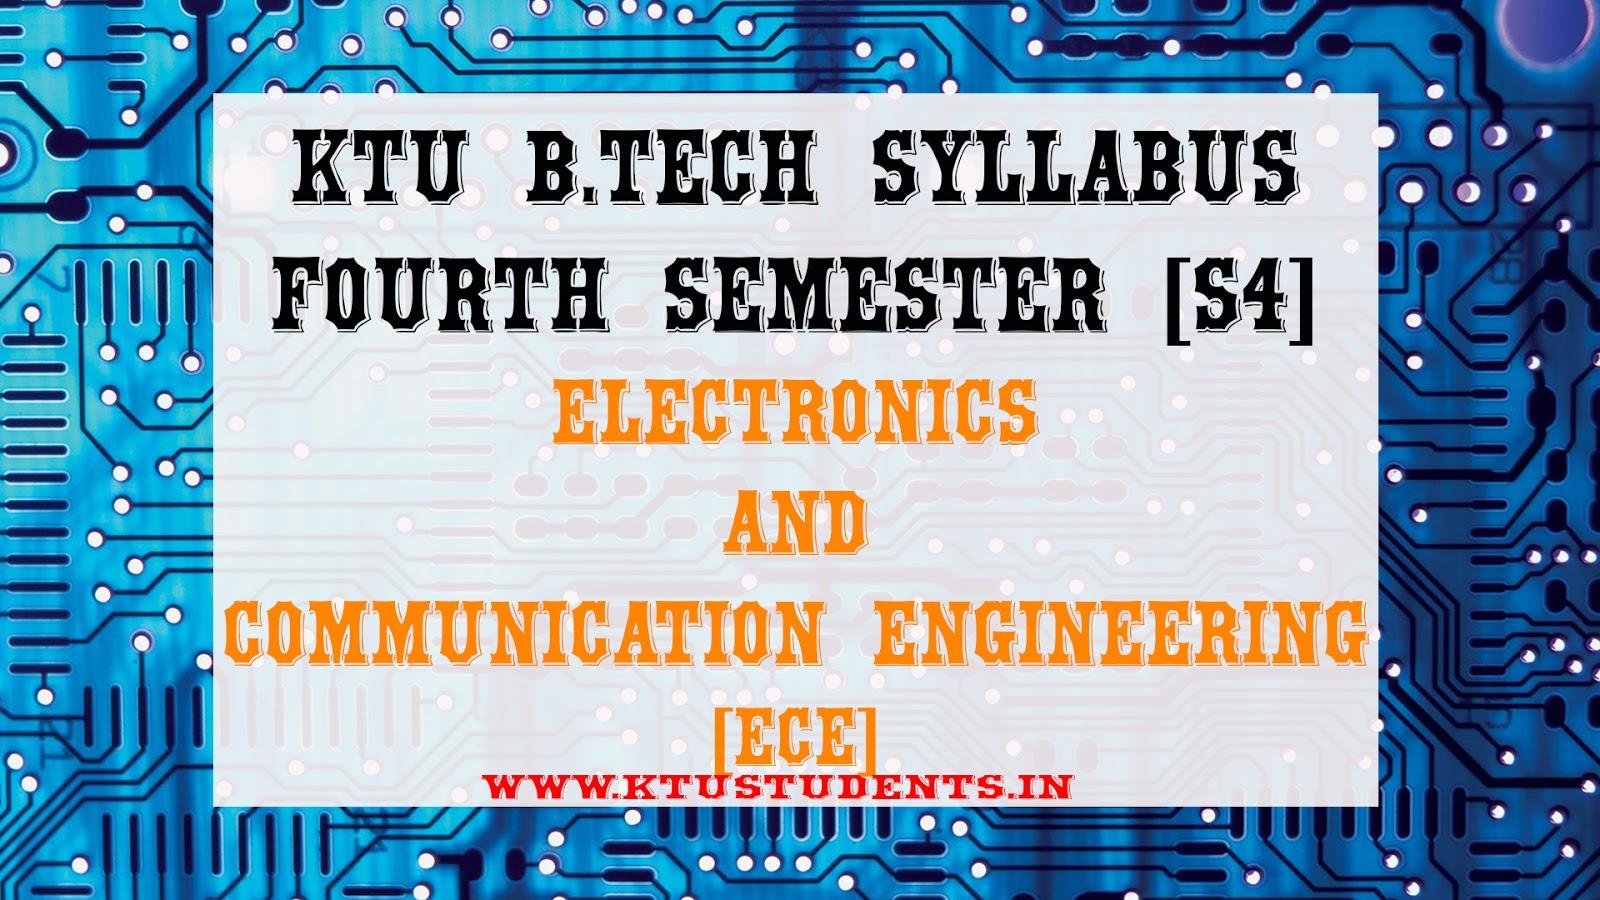 S4 Syllabus Electronics And Communication Engineering Ece Ktu Analog Electronic Circuits Textbook Pdf